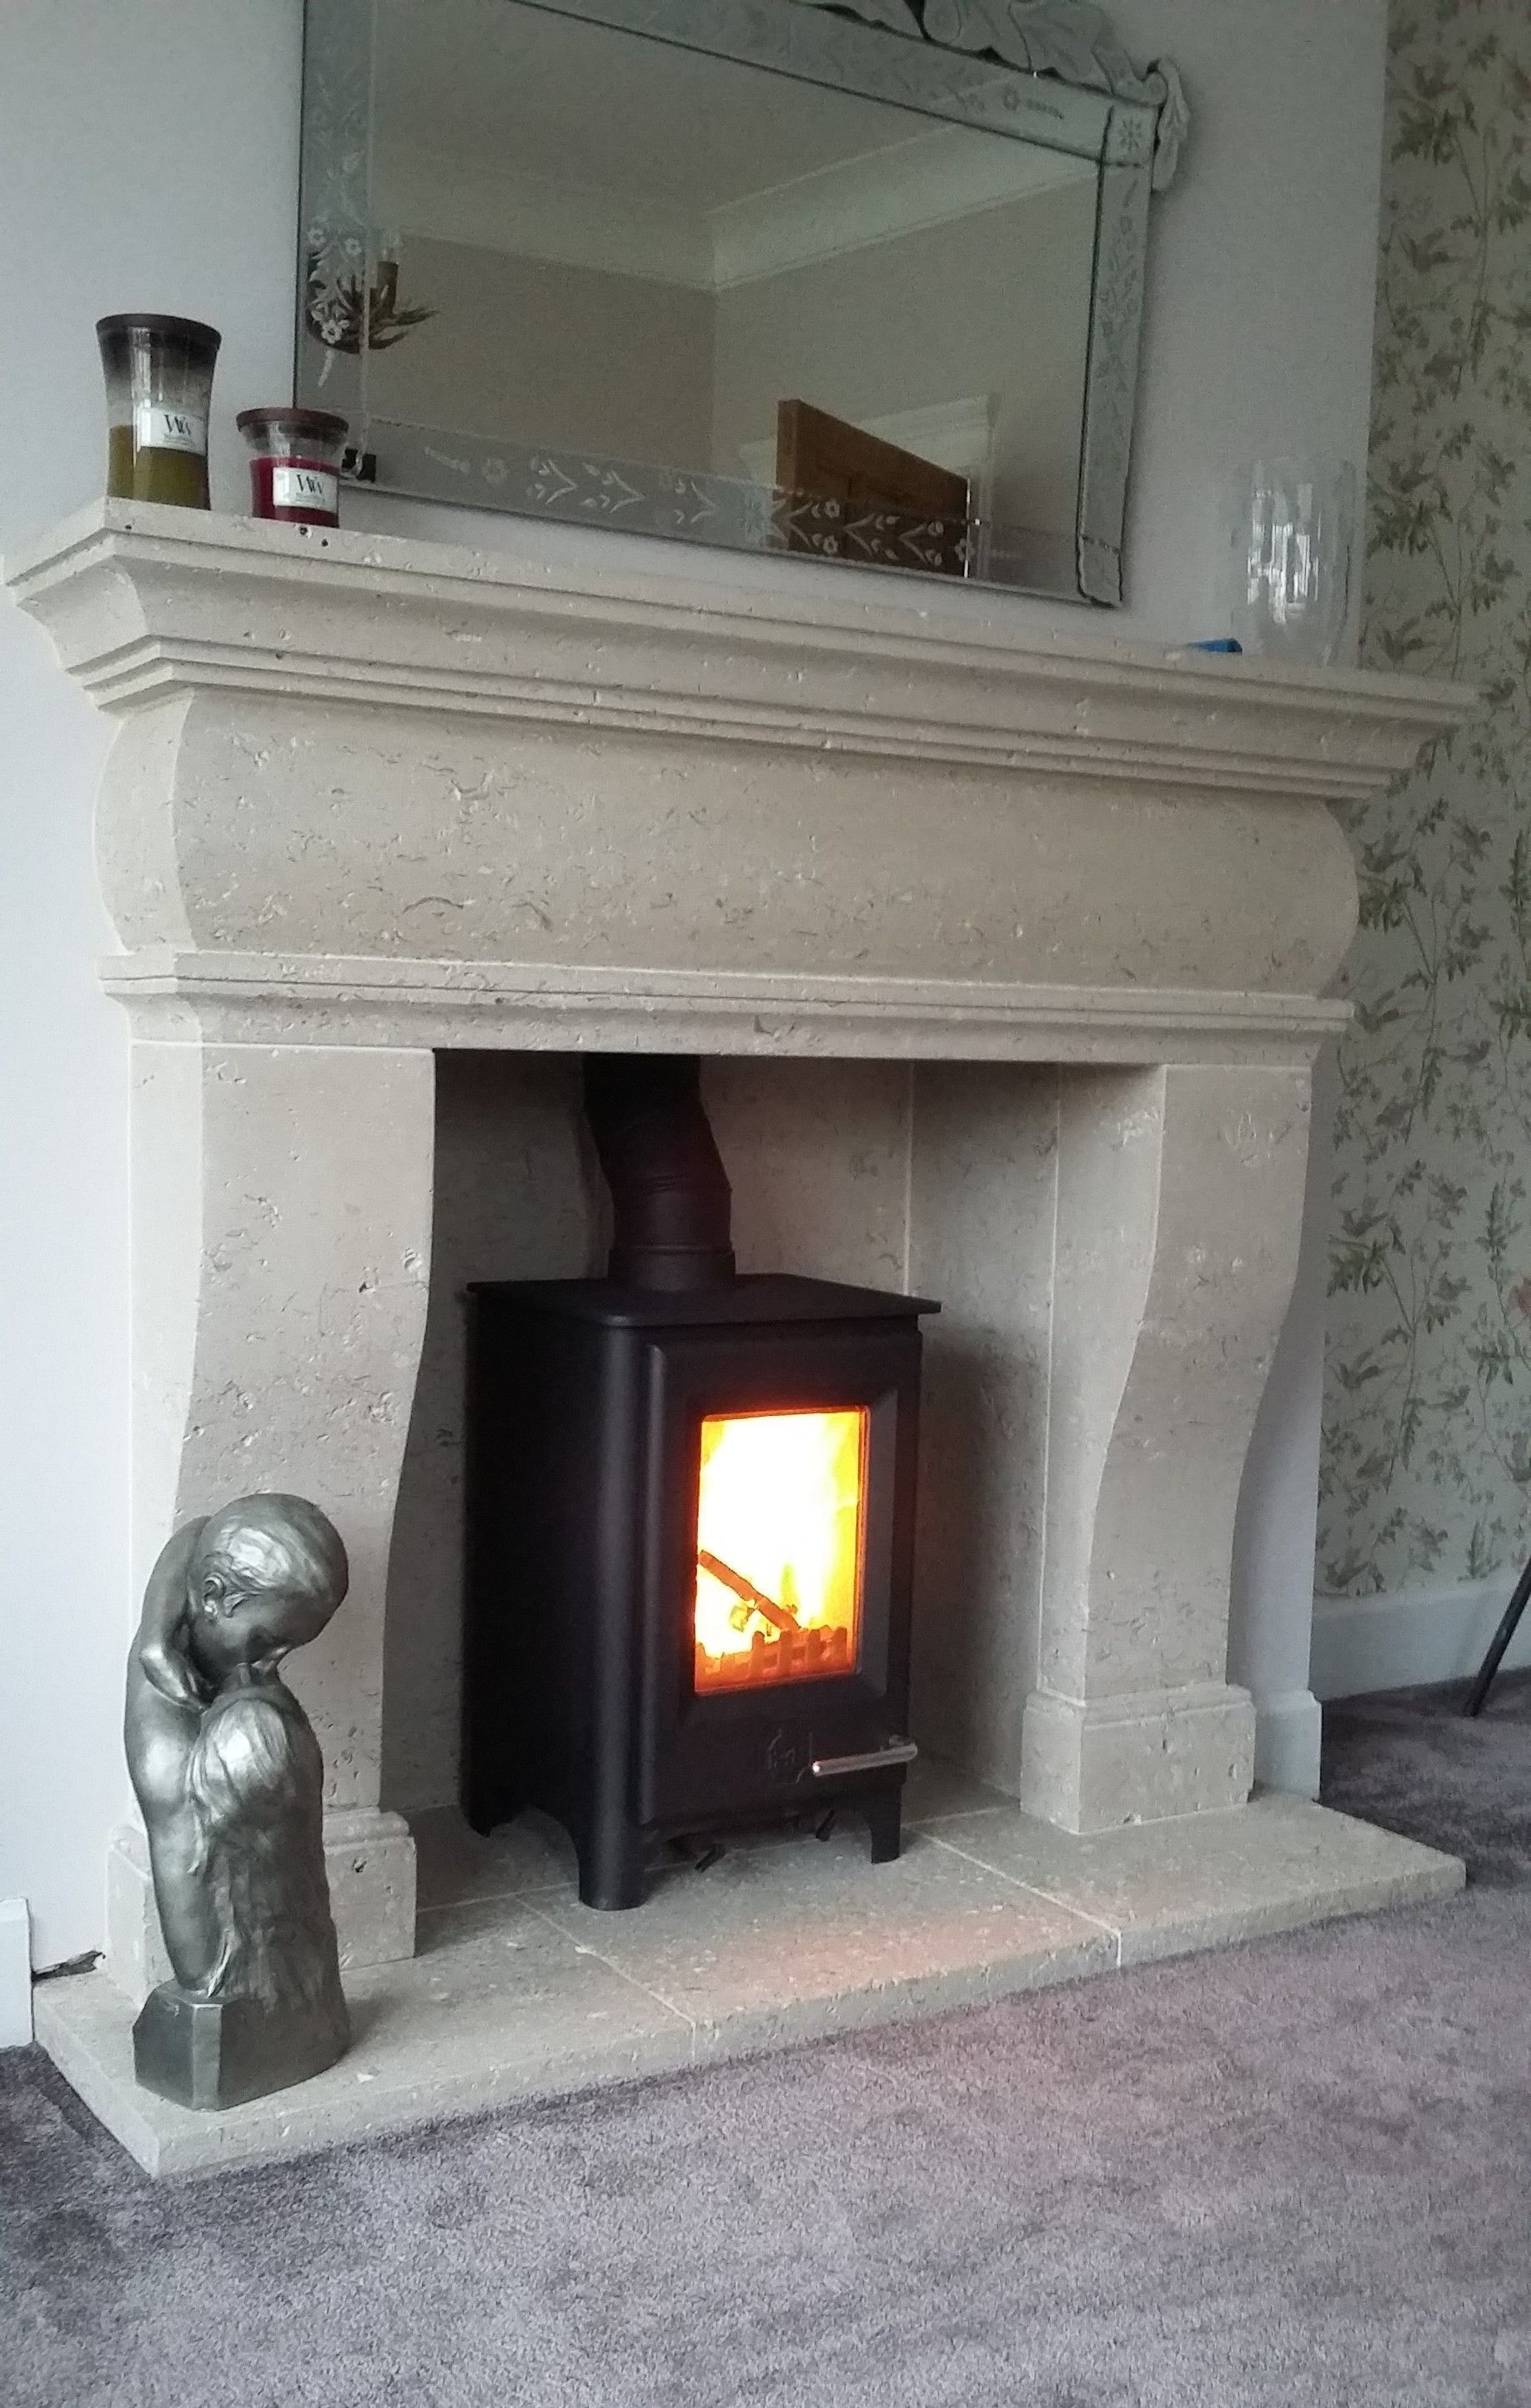 The Cheminee Solid Natural Stone Fireplace Hand Carved In Portland Limestone Installed In Lancashire Home Decorating Ideas In 2019 Natural Stone Fireplaces Sandstone Fireplace Portland Stone